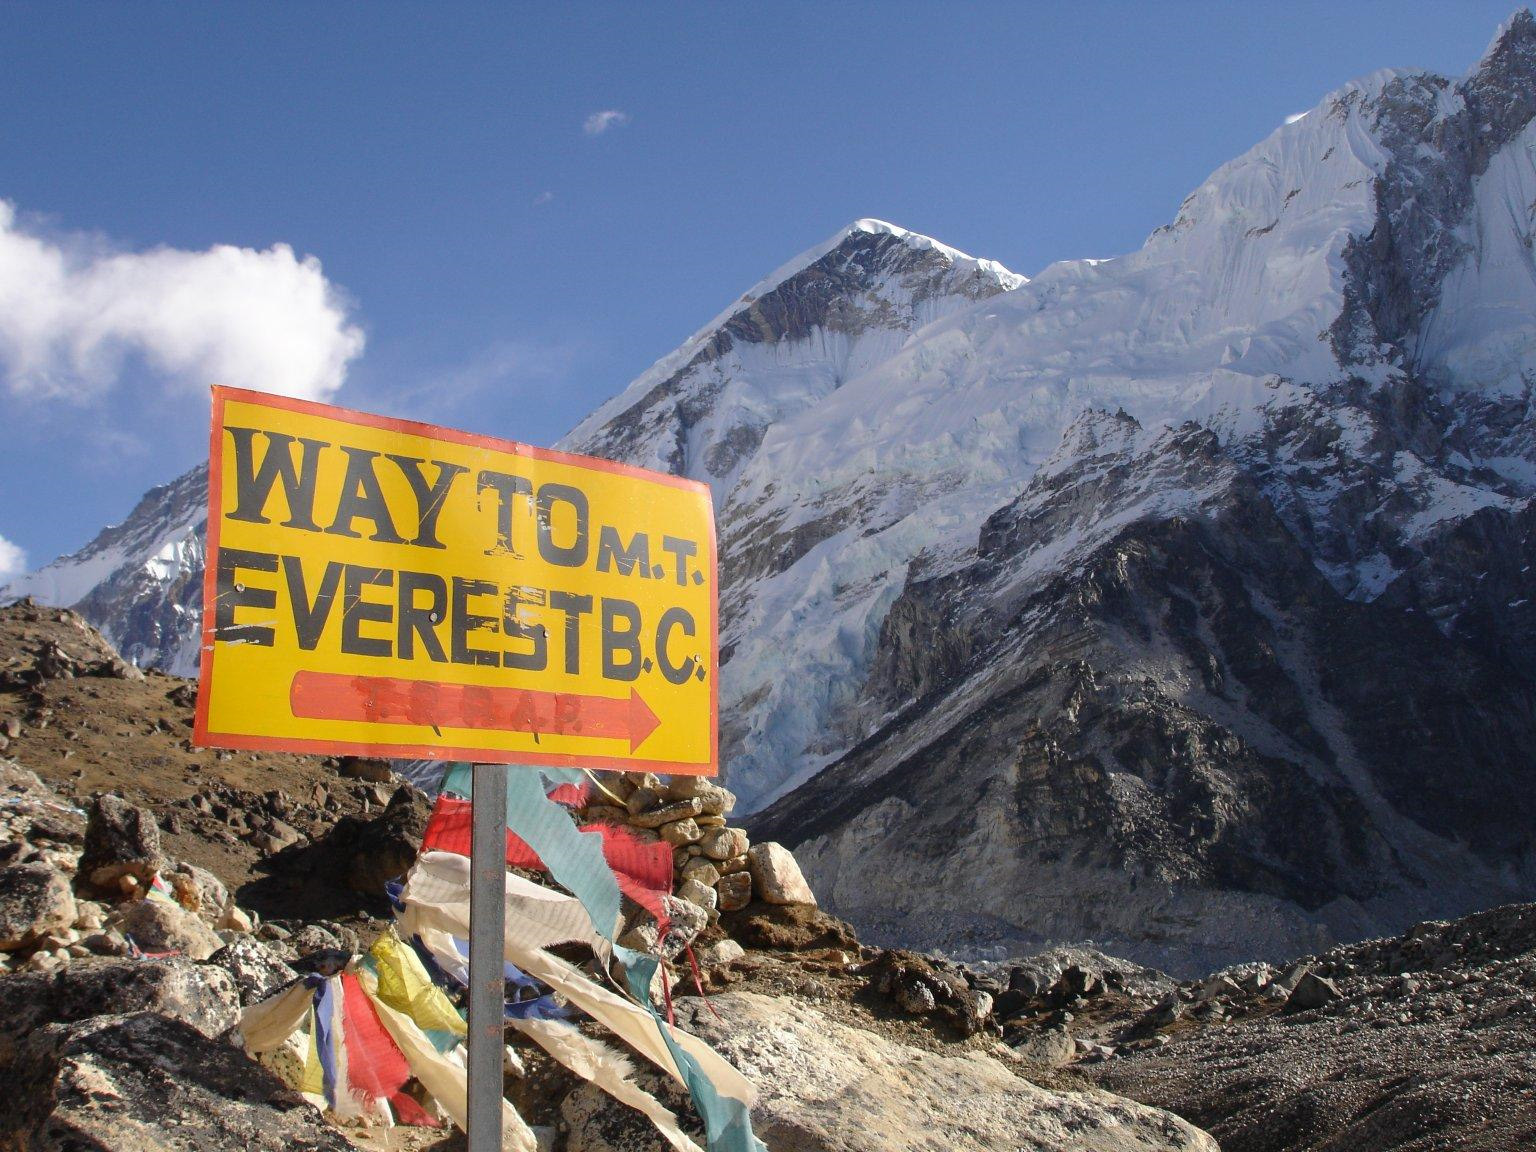 Mount Everest Base Camp, Nepal and Tibet | Beautiful ...